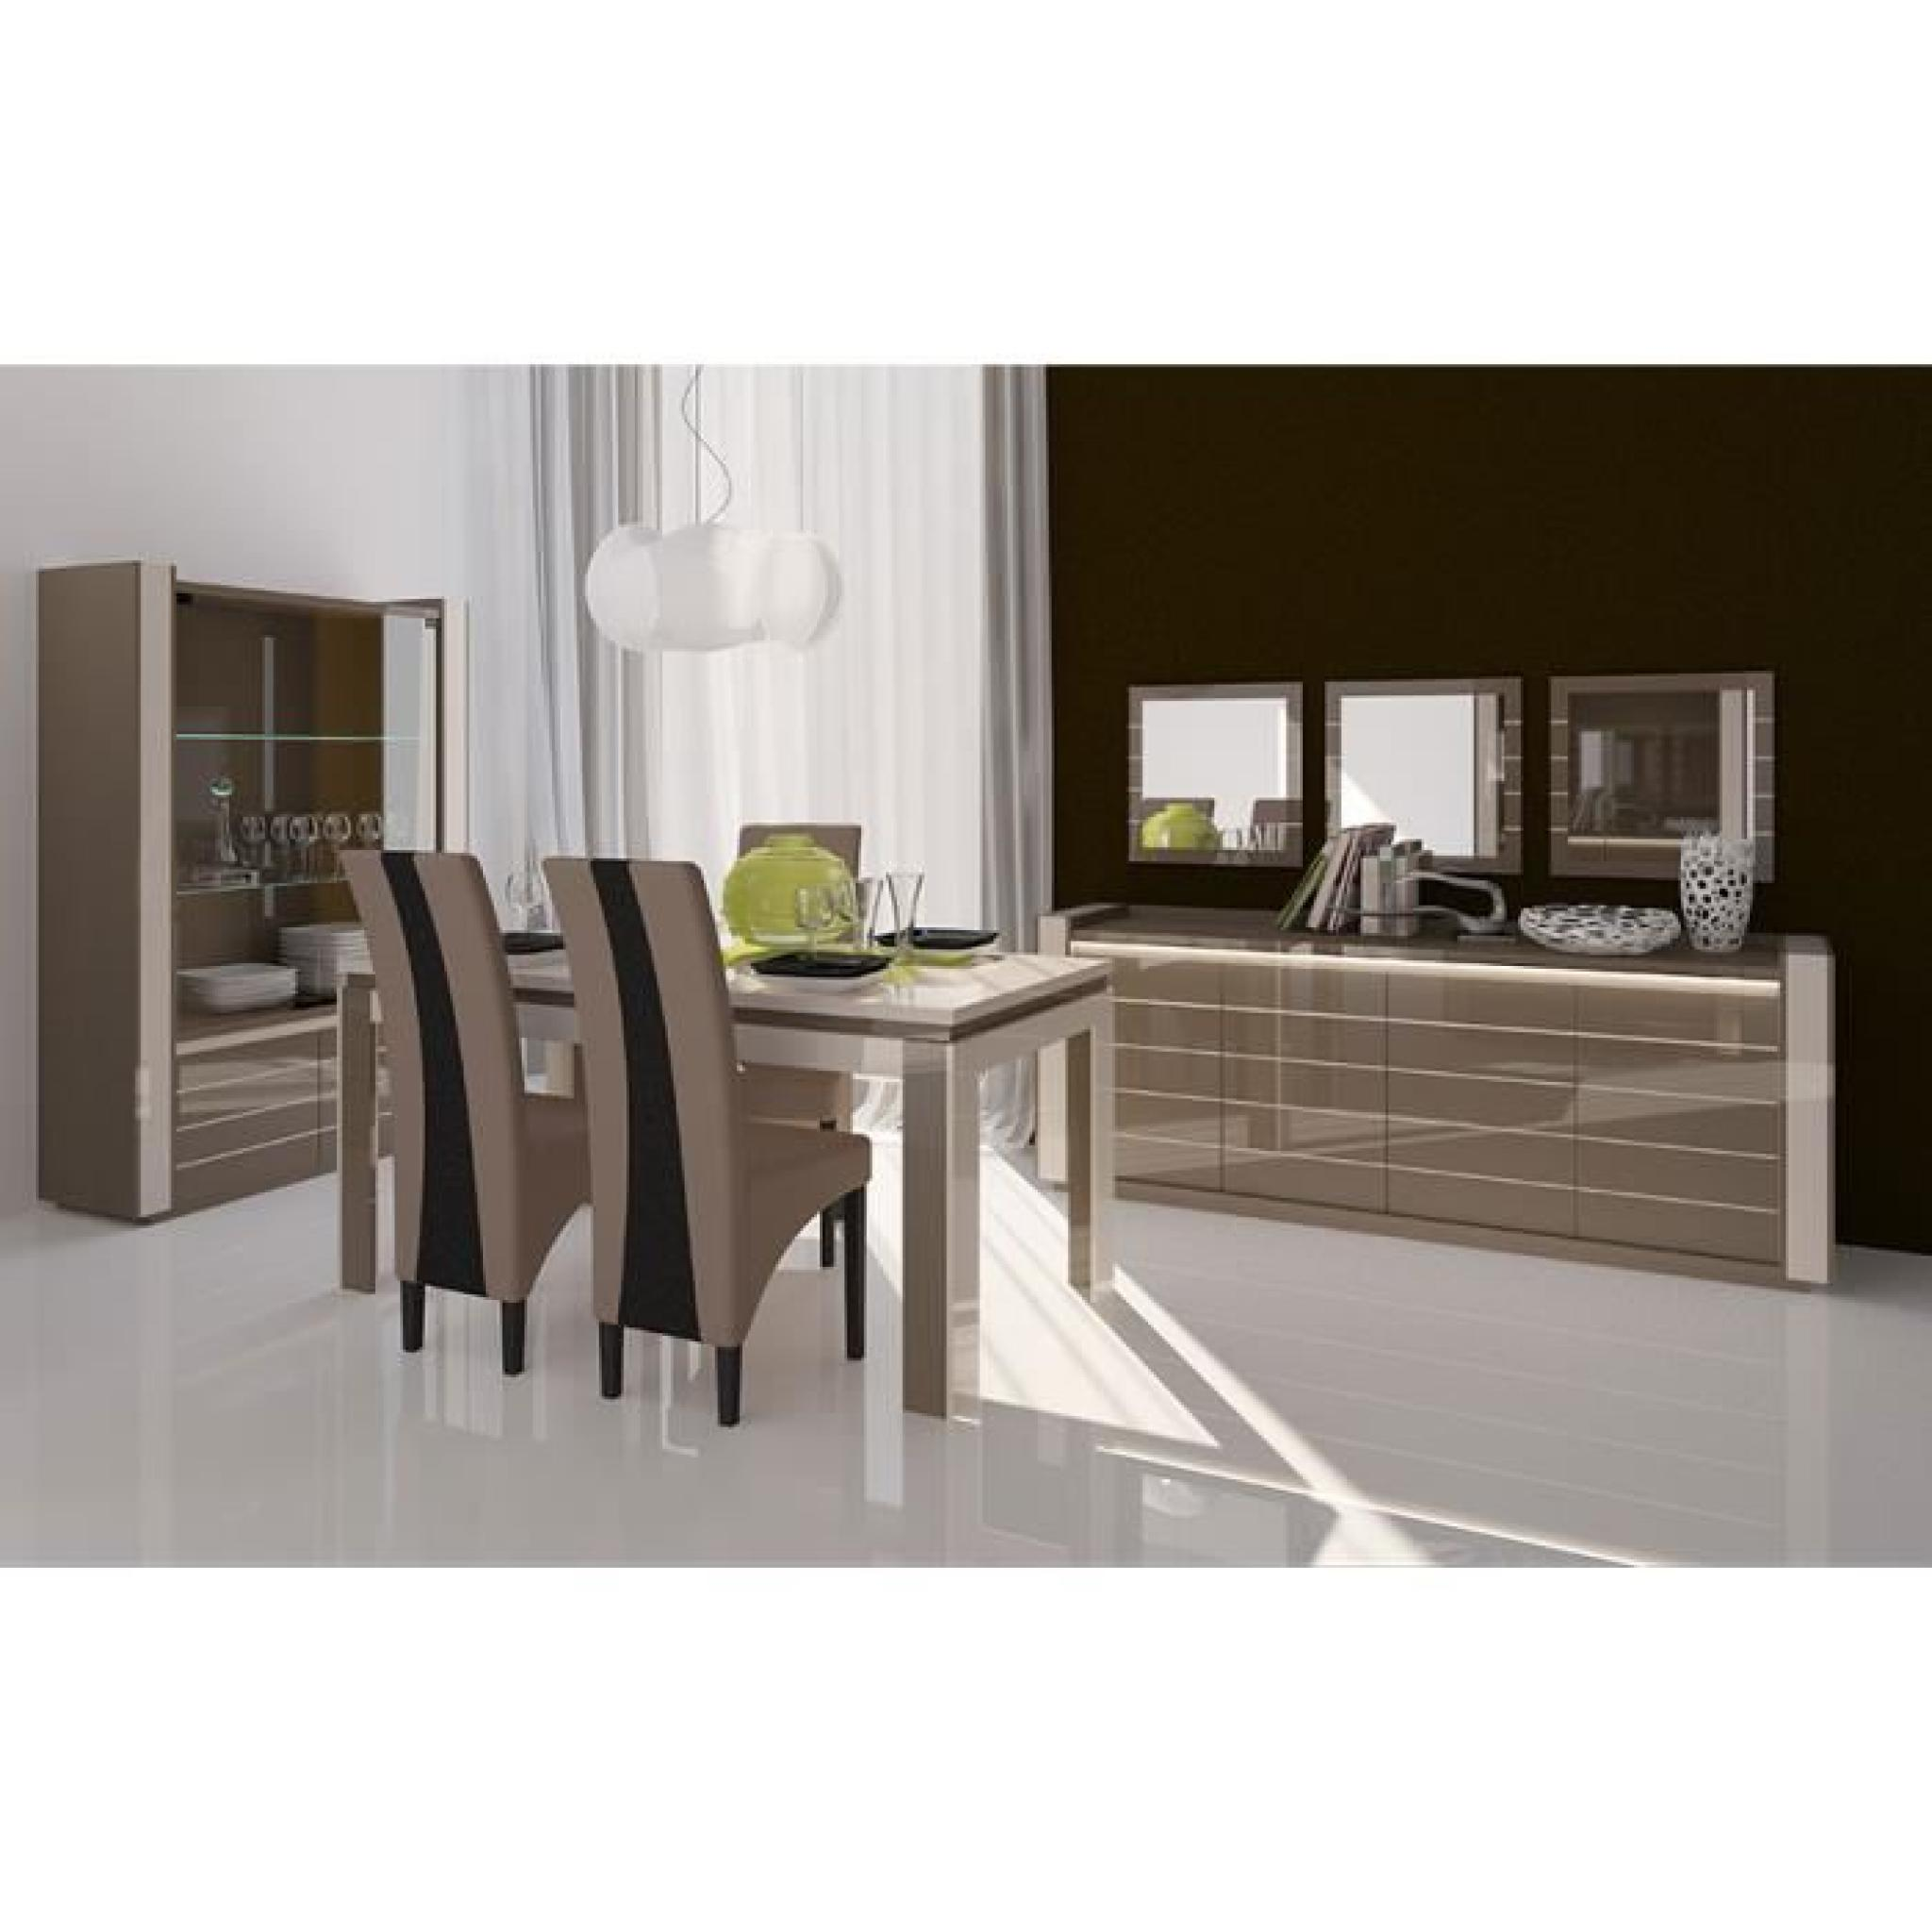 salle manger compl te cappuccino et cr me laqu design. Black Bedroom Furniture Sets. Home Design Ideas